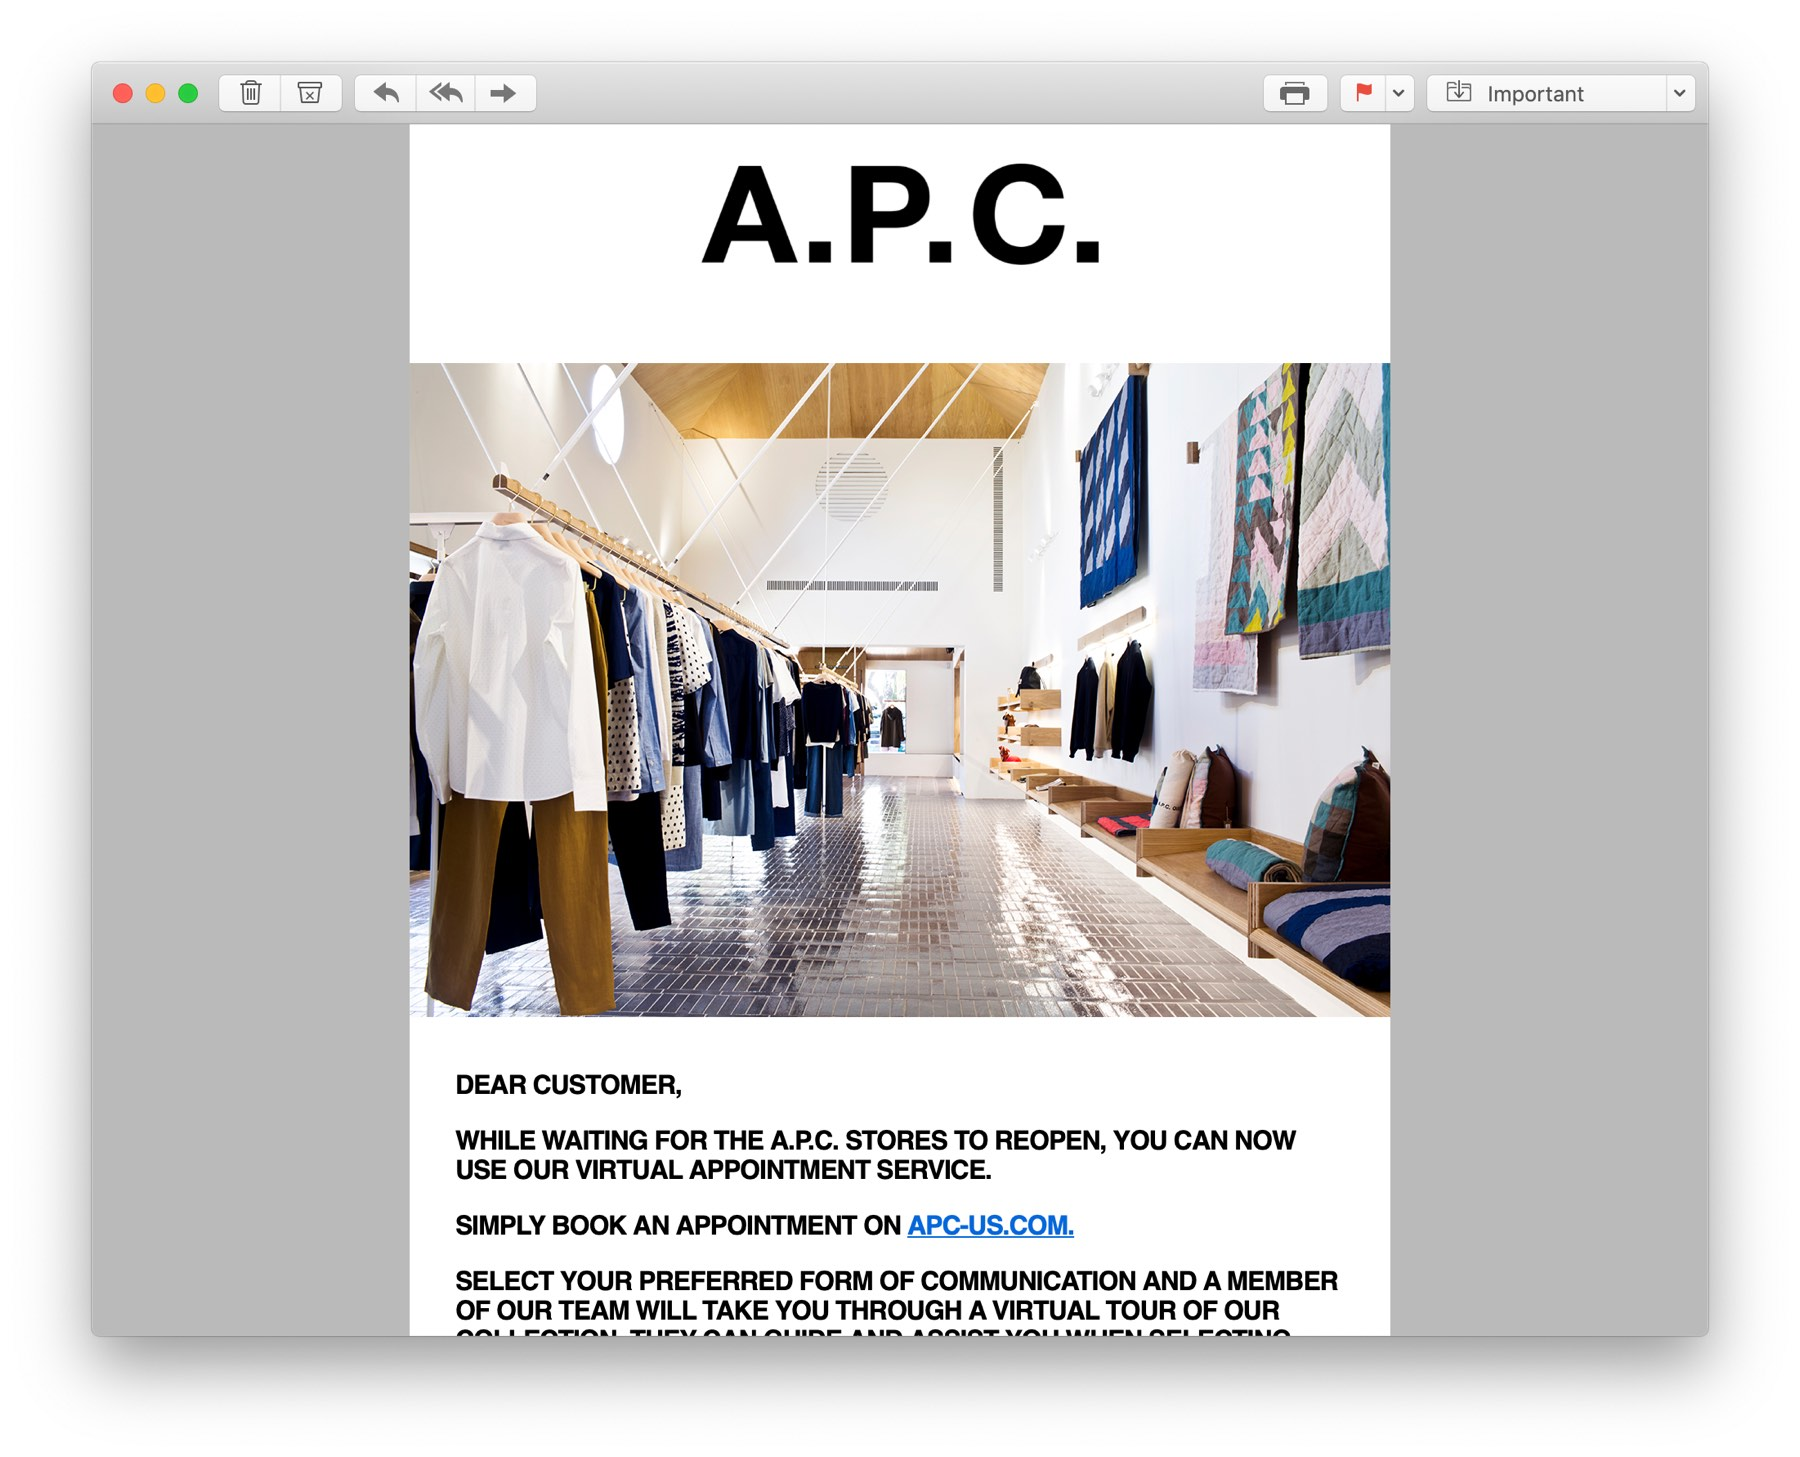 APC appointment marketing email